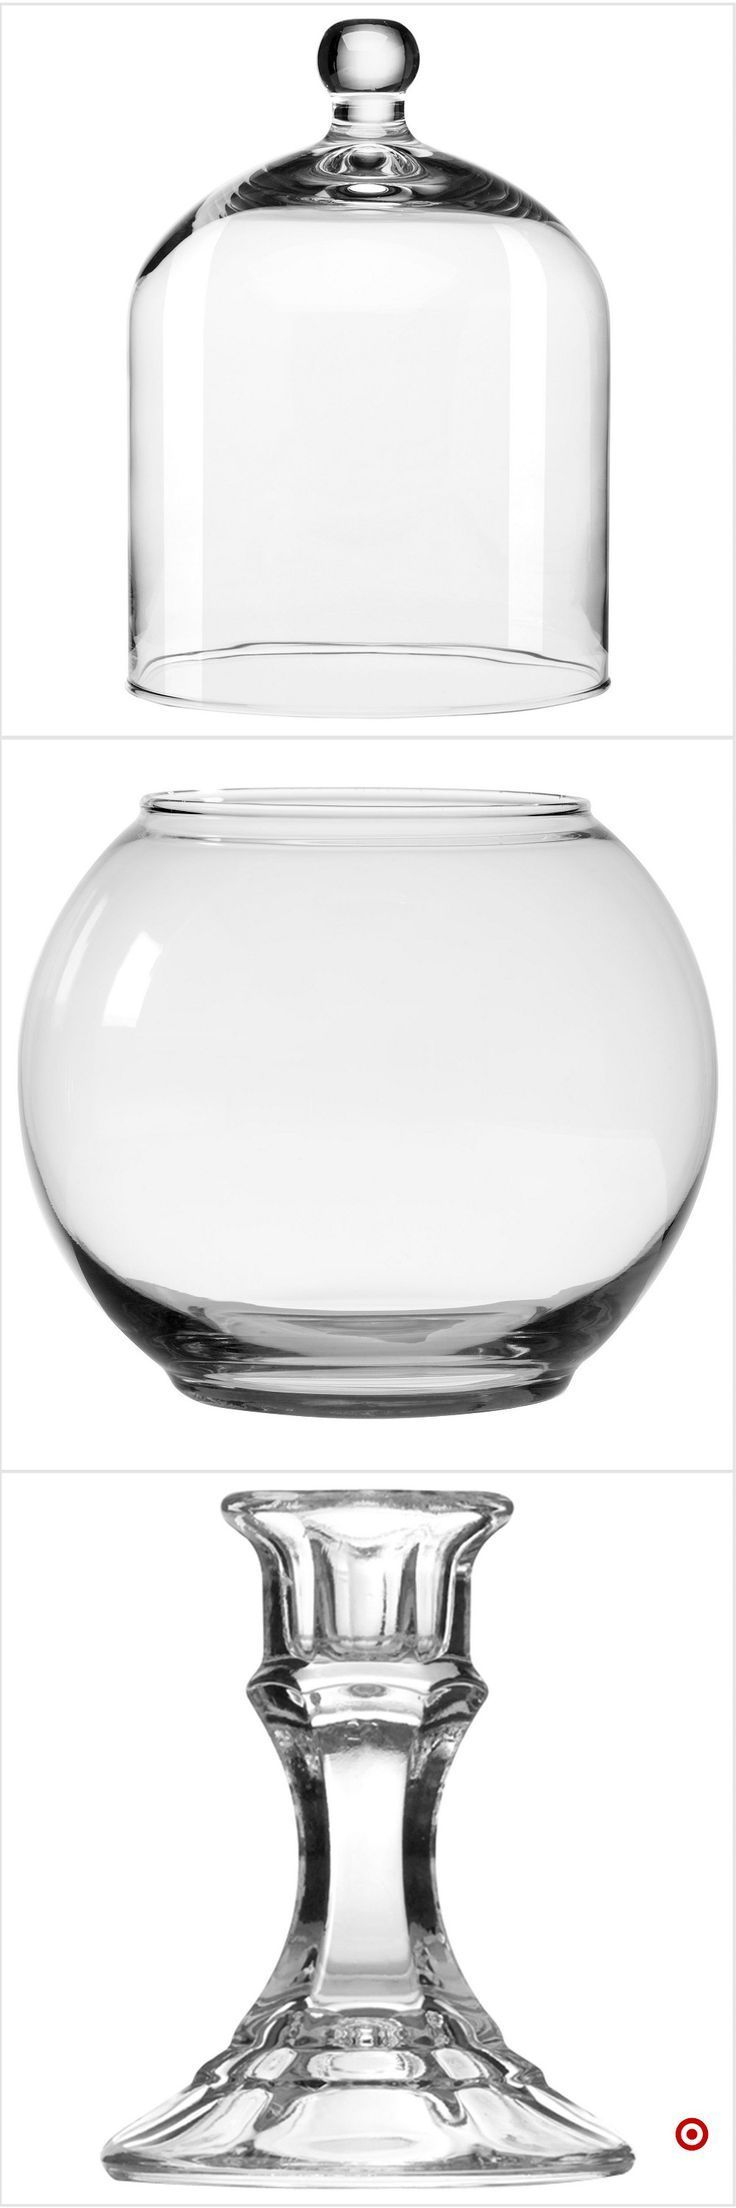 Shop Target for single candle holder you will love at great low prices. Free shipping on orders ...